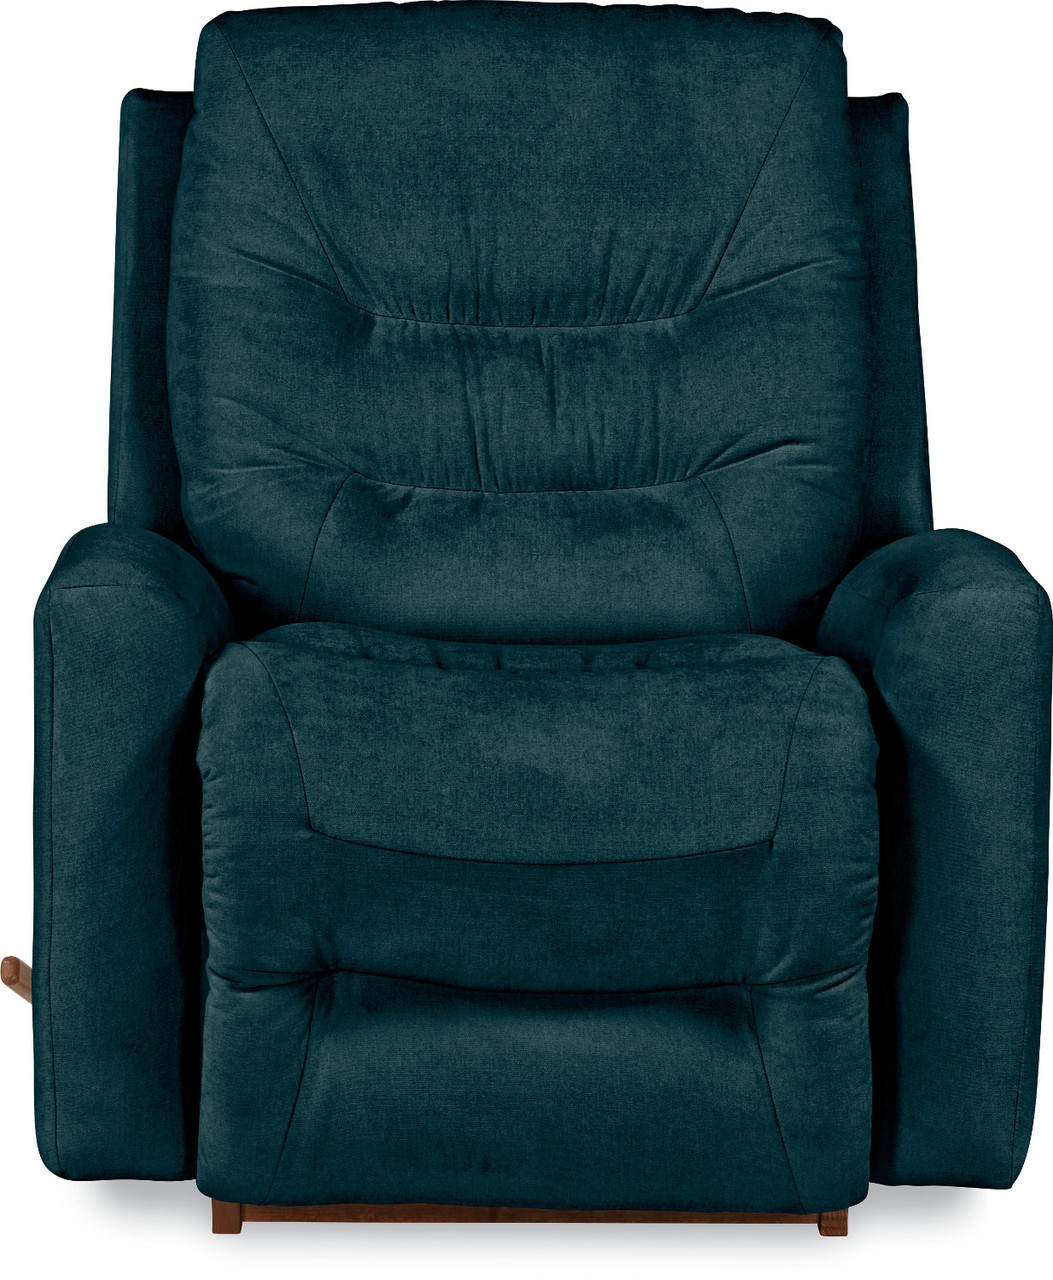 The Ace Reclina Way Recliner Sold At Rose Brothers Furniture Serving Wilmington And Jacksonville